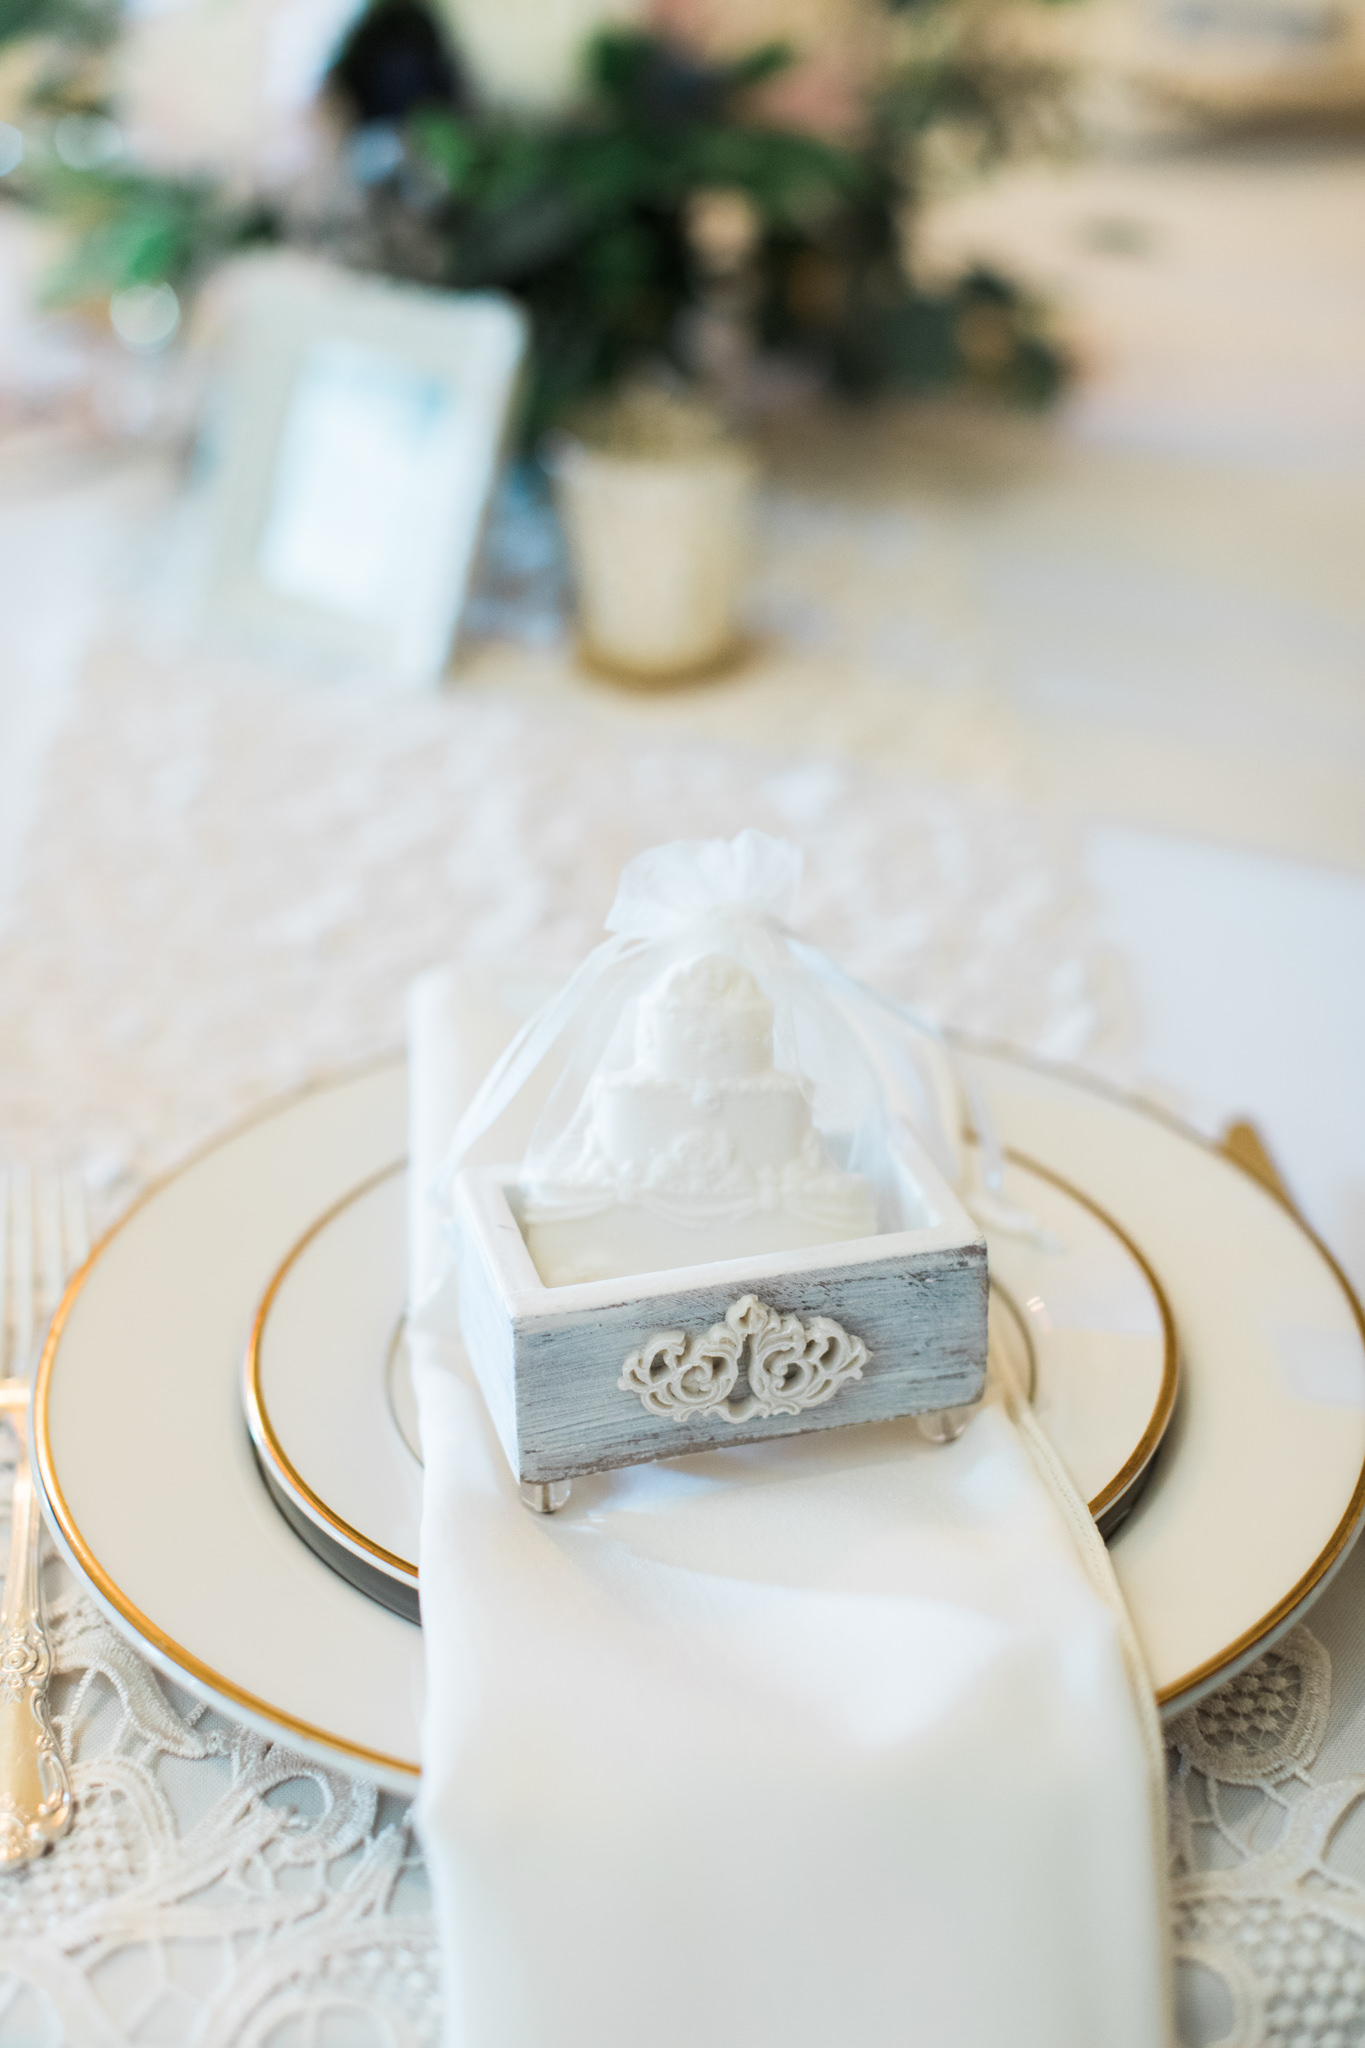 White wooden deco box with white chocolate cake inside wedding favor